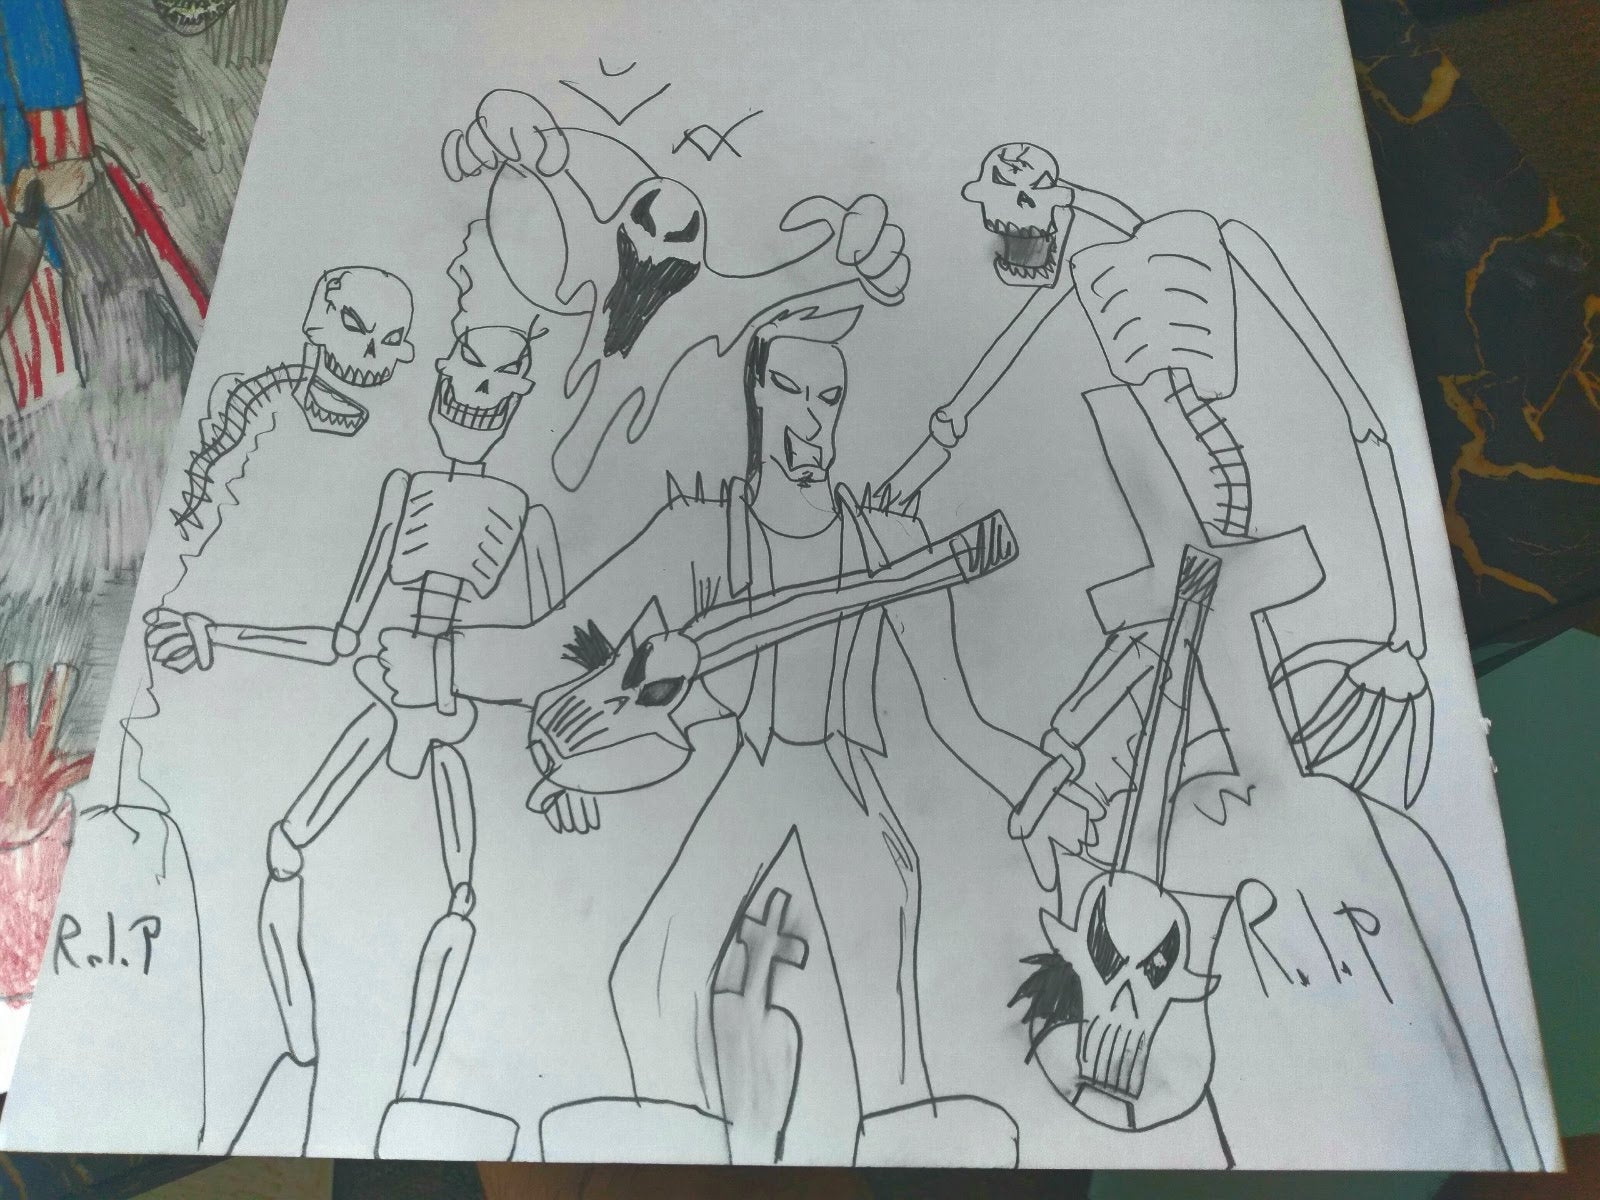 """a pencil drawing on white paper, photographed against a stack of other drawings. The image shows a figure holding a skull-and-bones shaped guitar standing in the center of the picture, surrounded by skeletons and ghosts and bats. There are several gravestones with """"RIP"""" written across their surfaces scattered around the ground. The characters all seem to be smiling and cackling with evil grins, and posed like members of a metal band."""